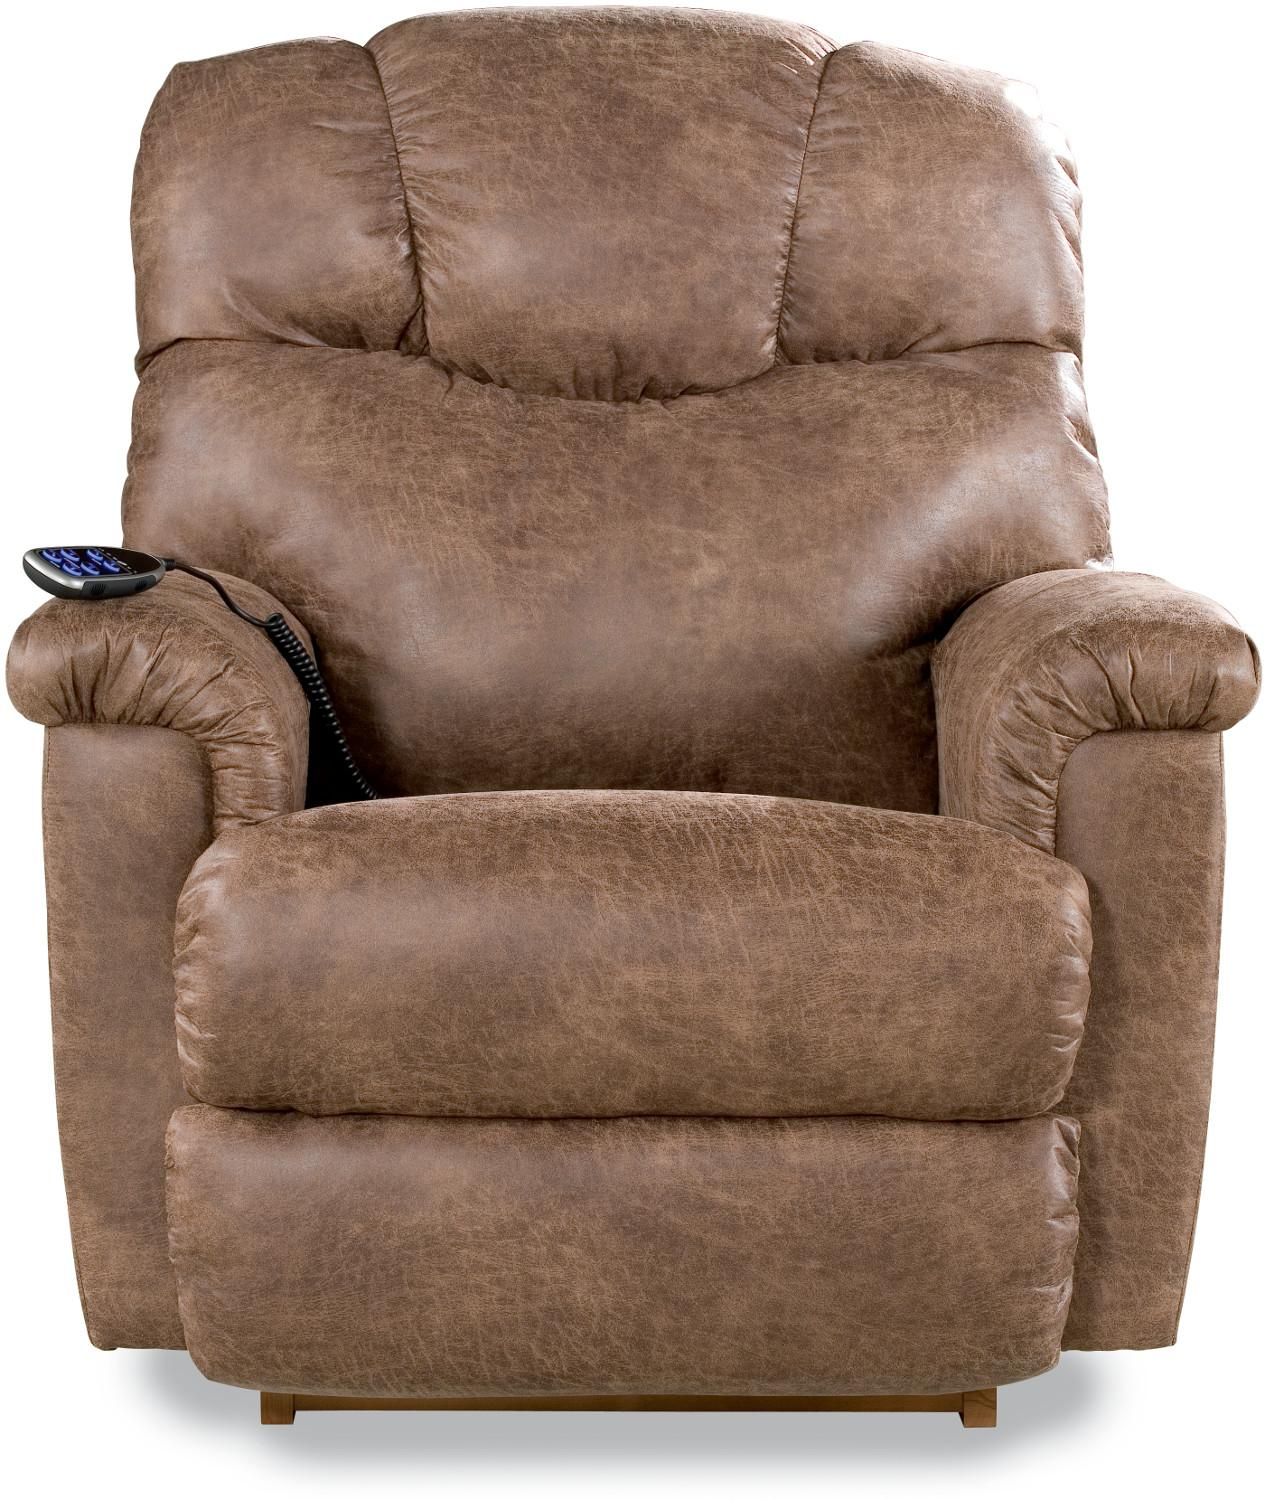 Lancer Power Rocking Recliner by La-Z-Boy at Fisher Home Furnishings